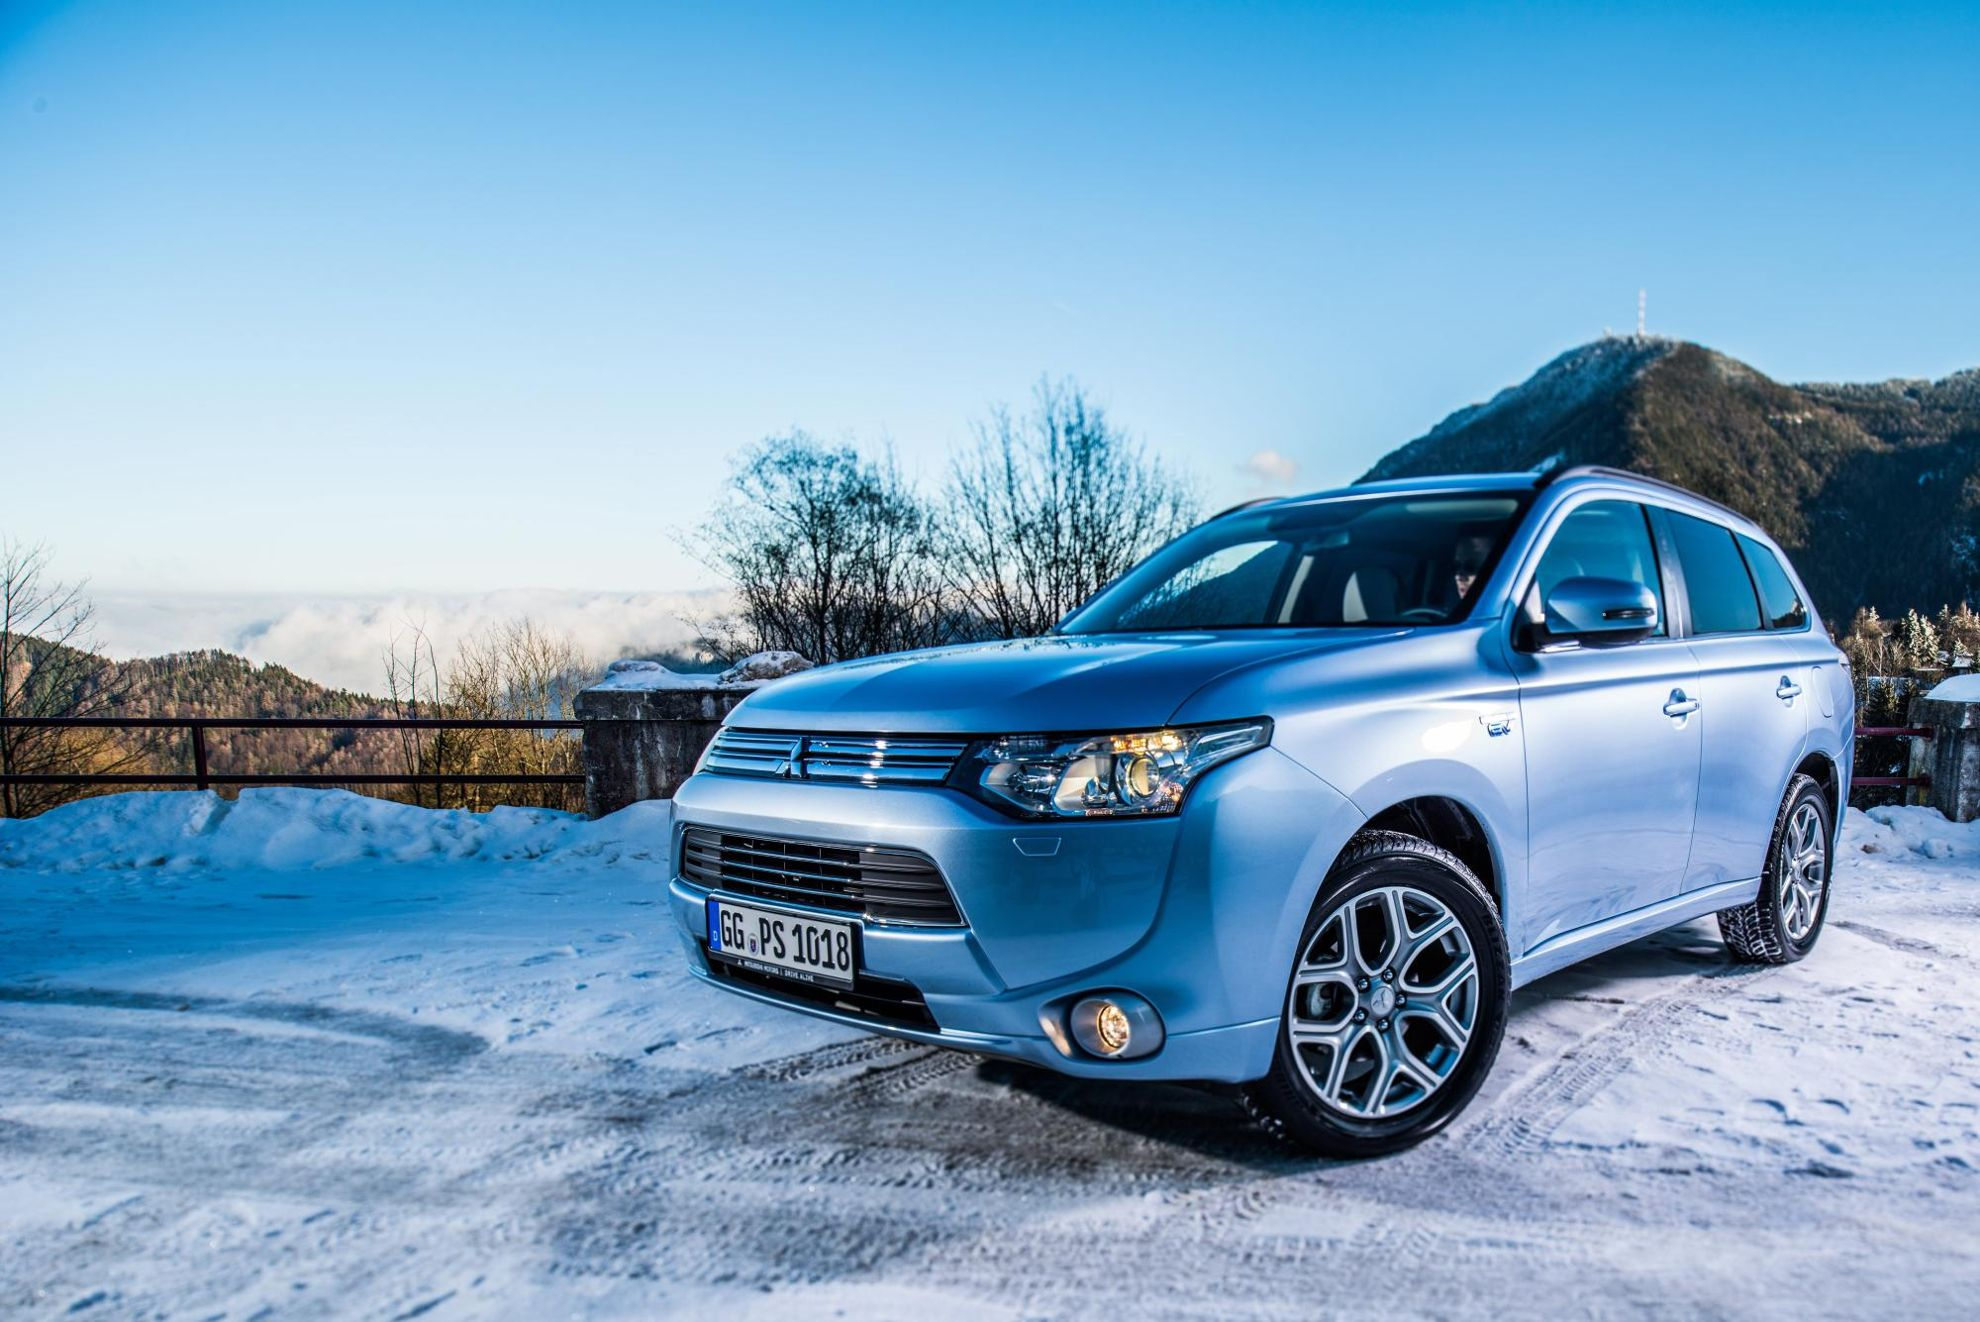 Mitsubishi outlander electric vehicle